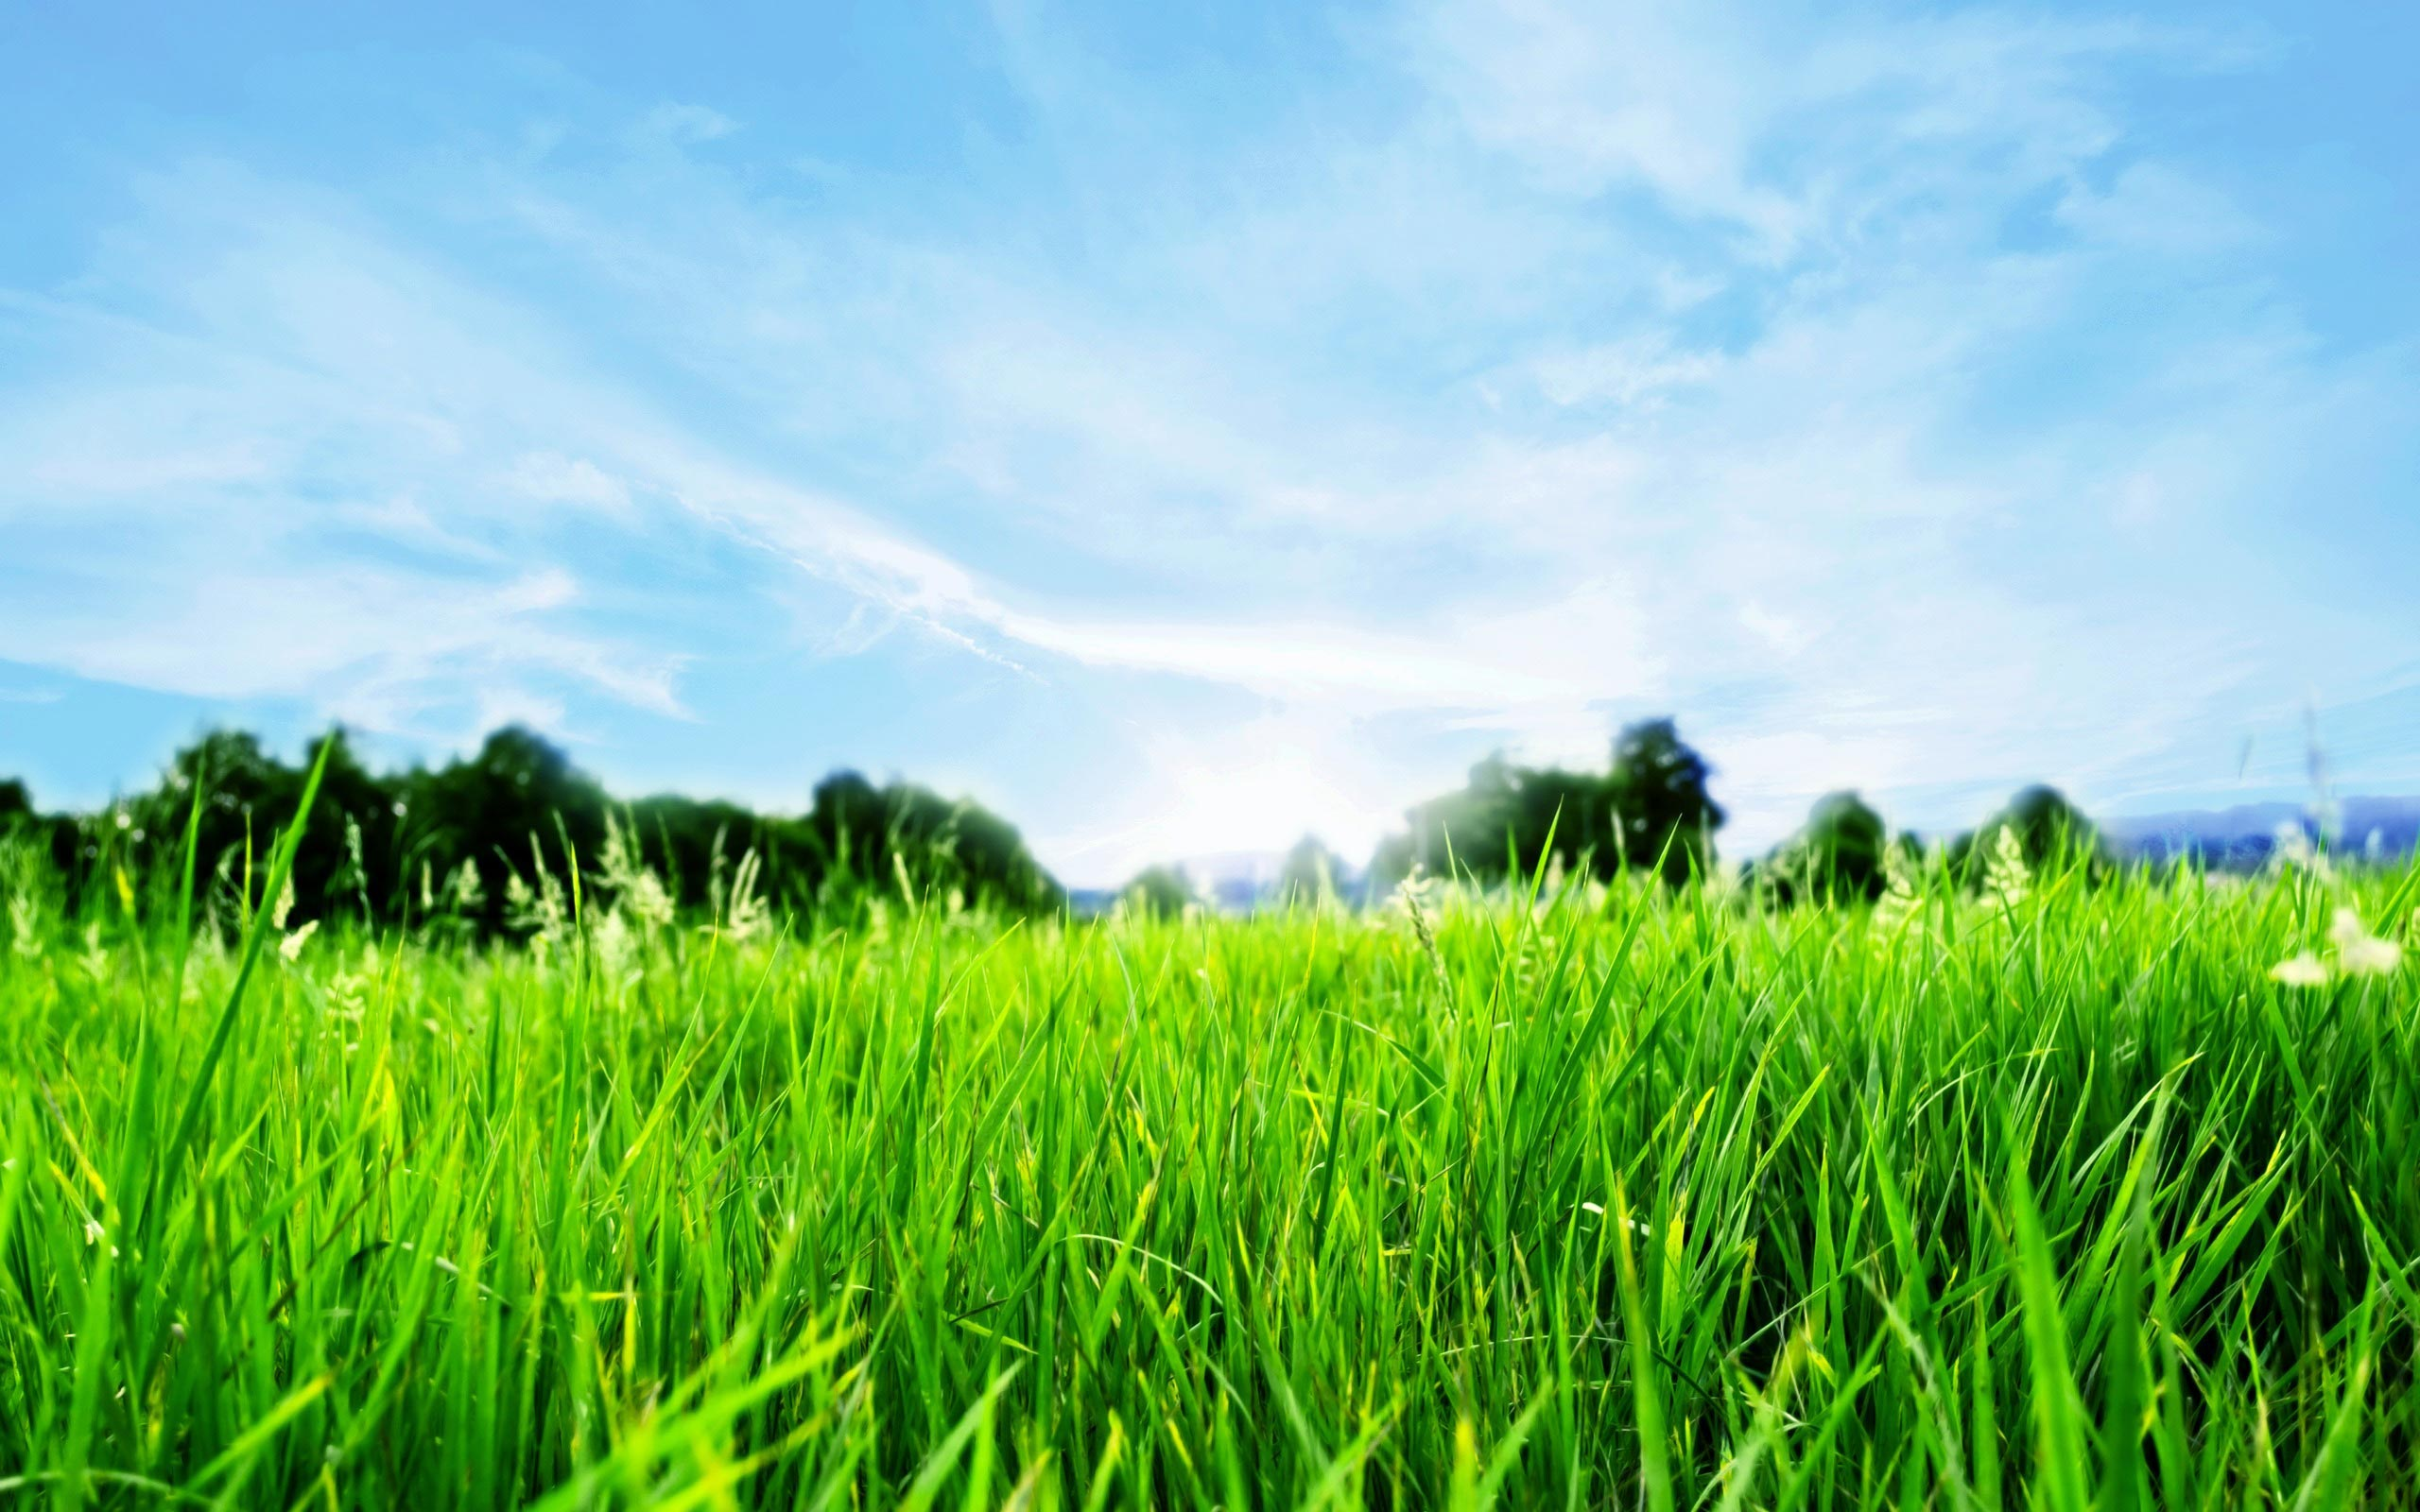 Collection of Grass And Sky Wallpaper on HDWallpapers